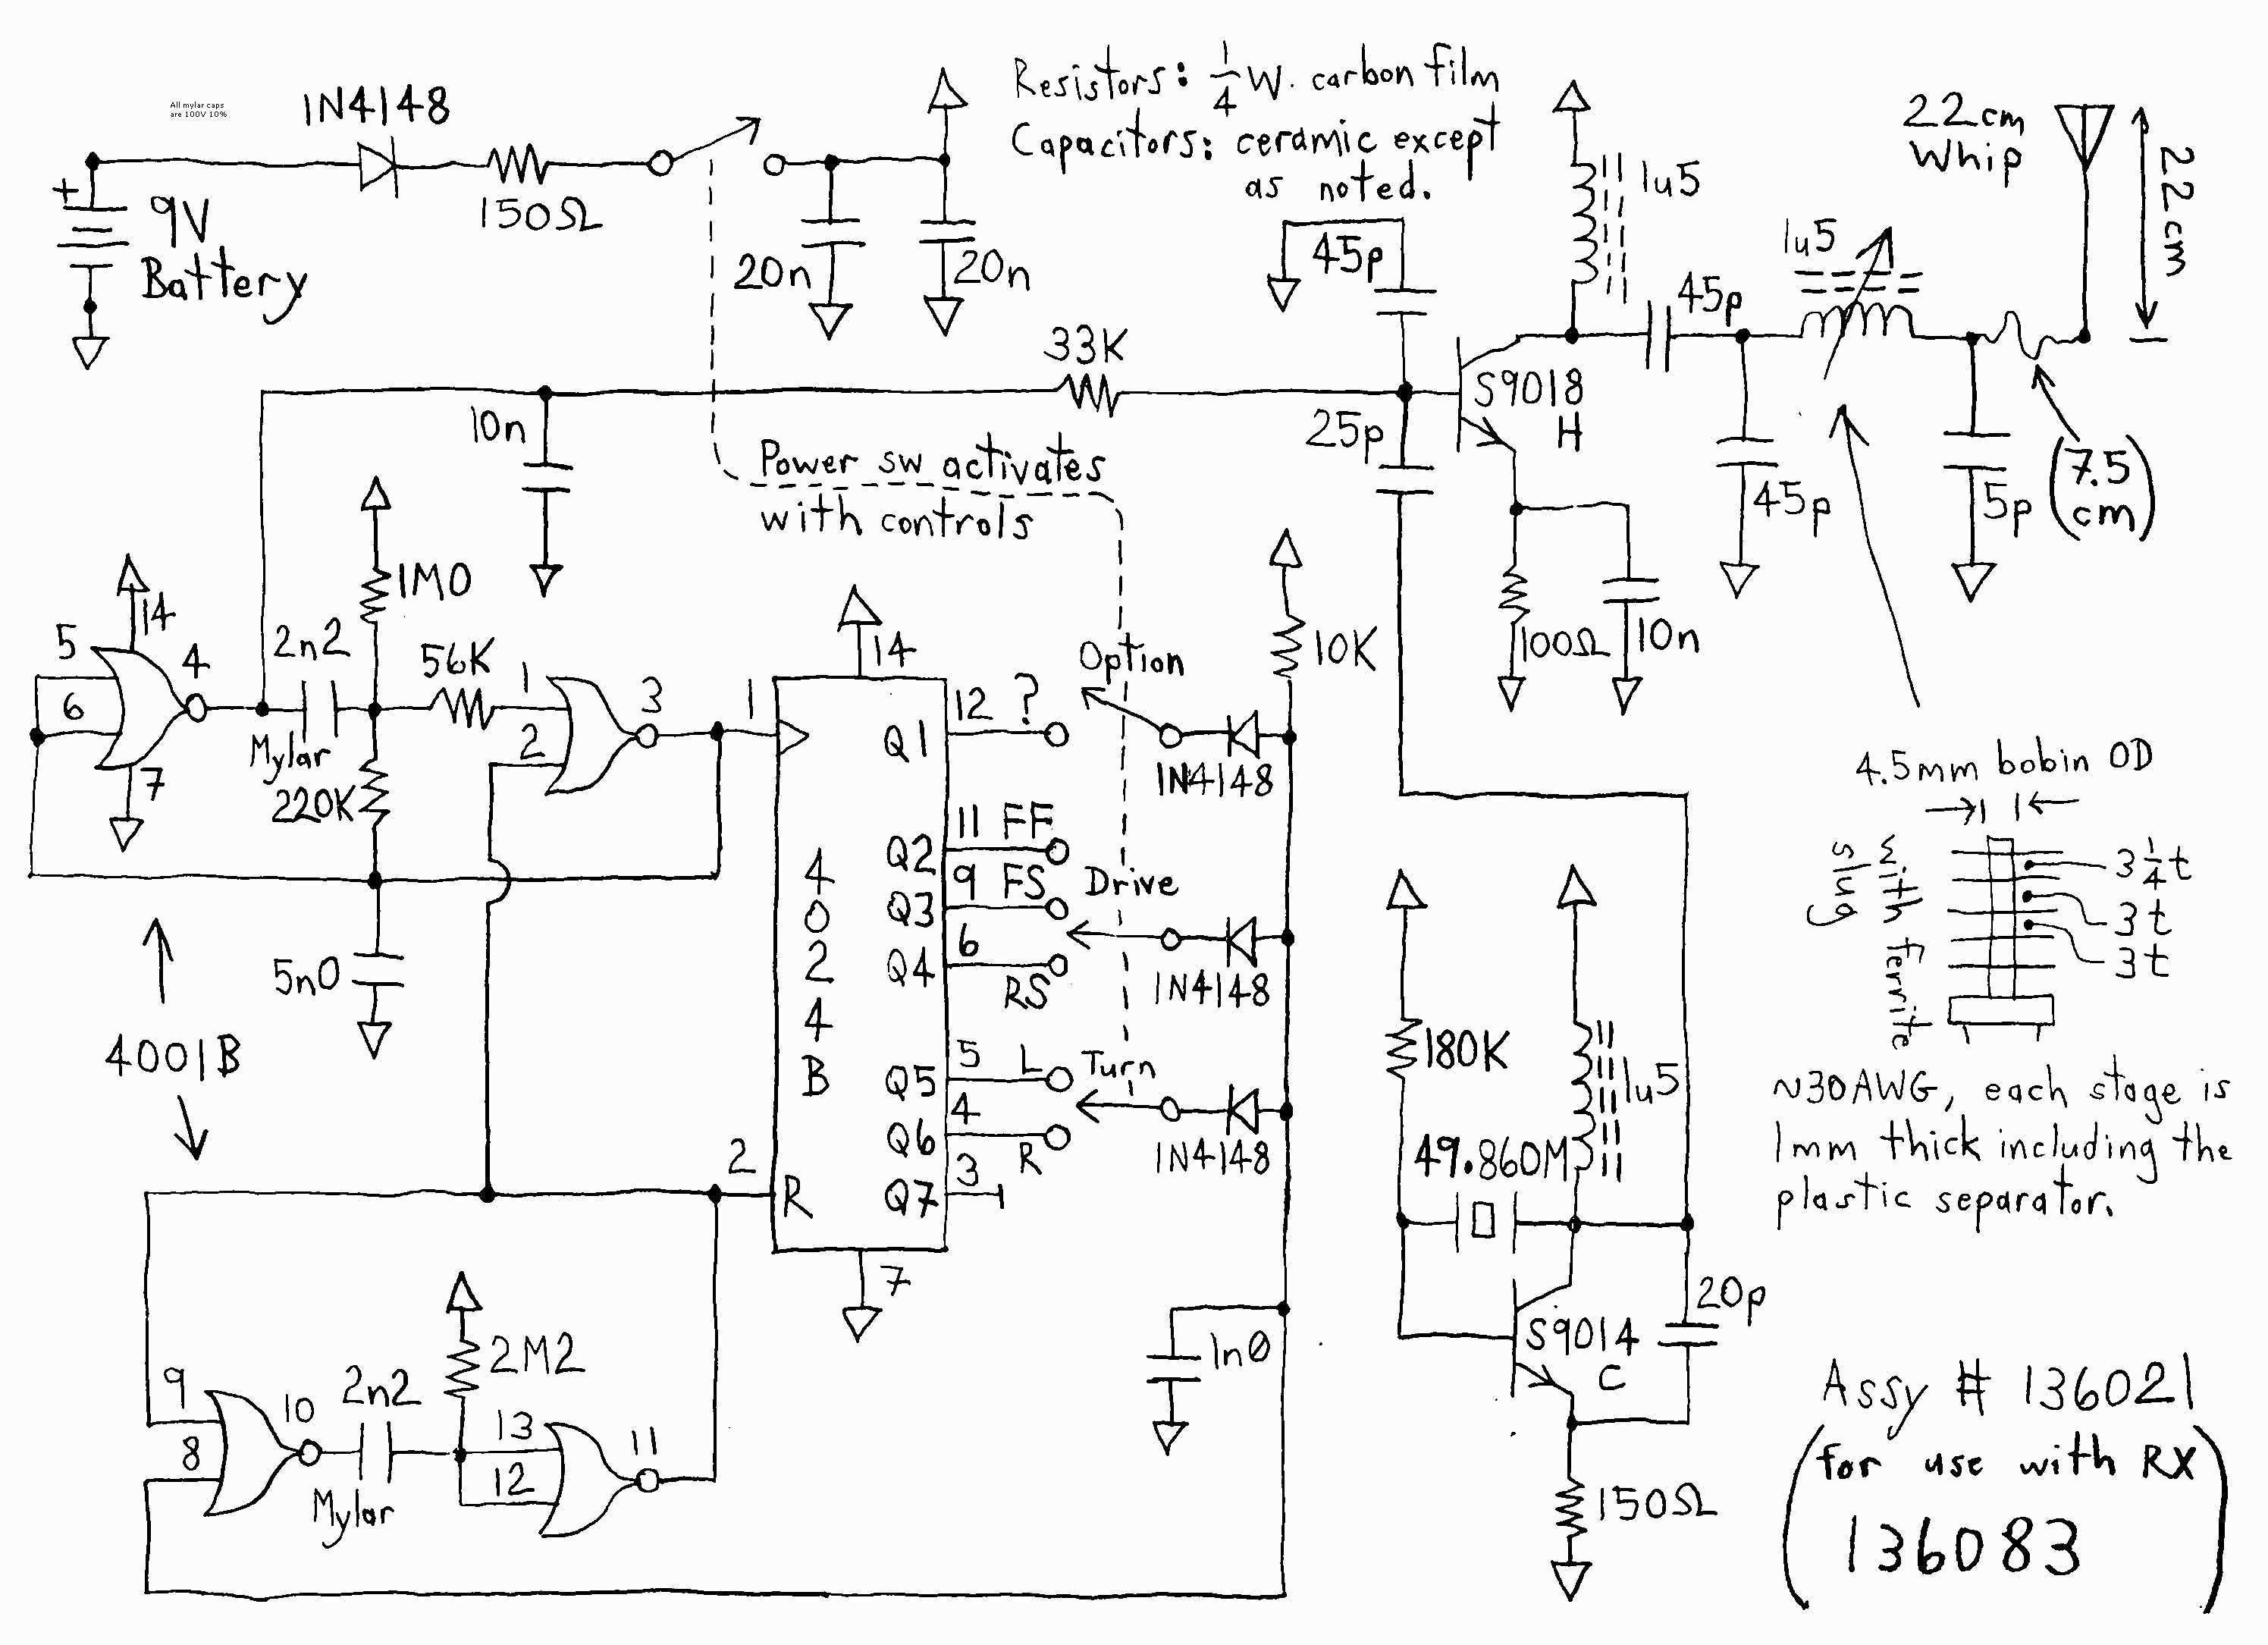 4 Way Dimmer Switch Wiring Diagram Ms Ops5m Wiring Diagram Lutron 3 Way Wiring Diagram Data Val Of 4 Way Dimmer Switch Wiring Diagram